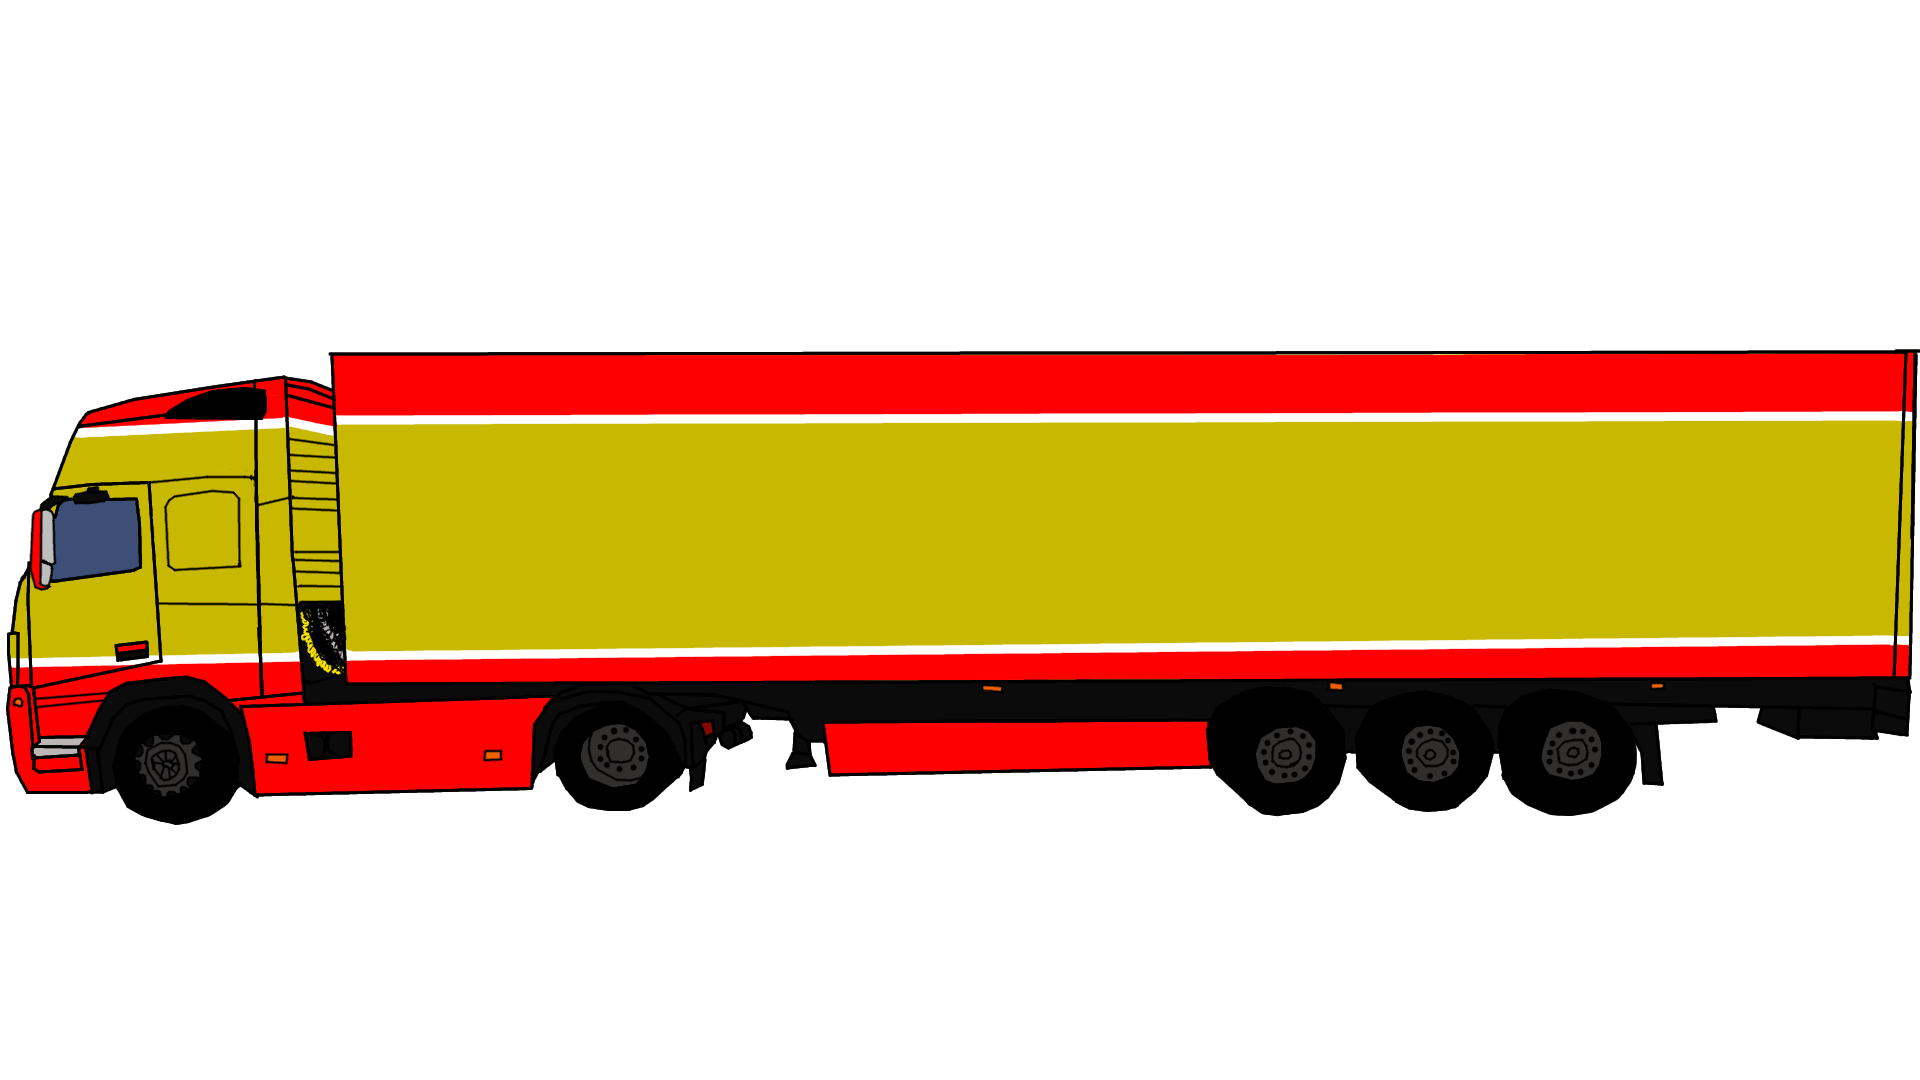 Truck with tree clipart graphic transparent download Peterbilt Clipart at GetDrawings.com | Free for personal use ... graphic transparent download